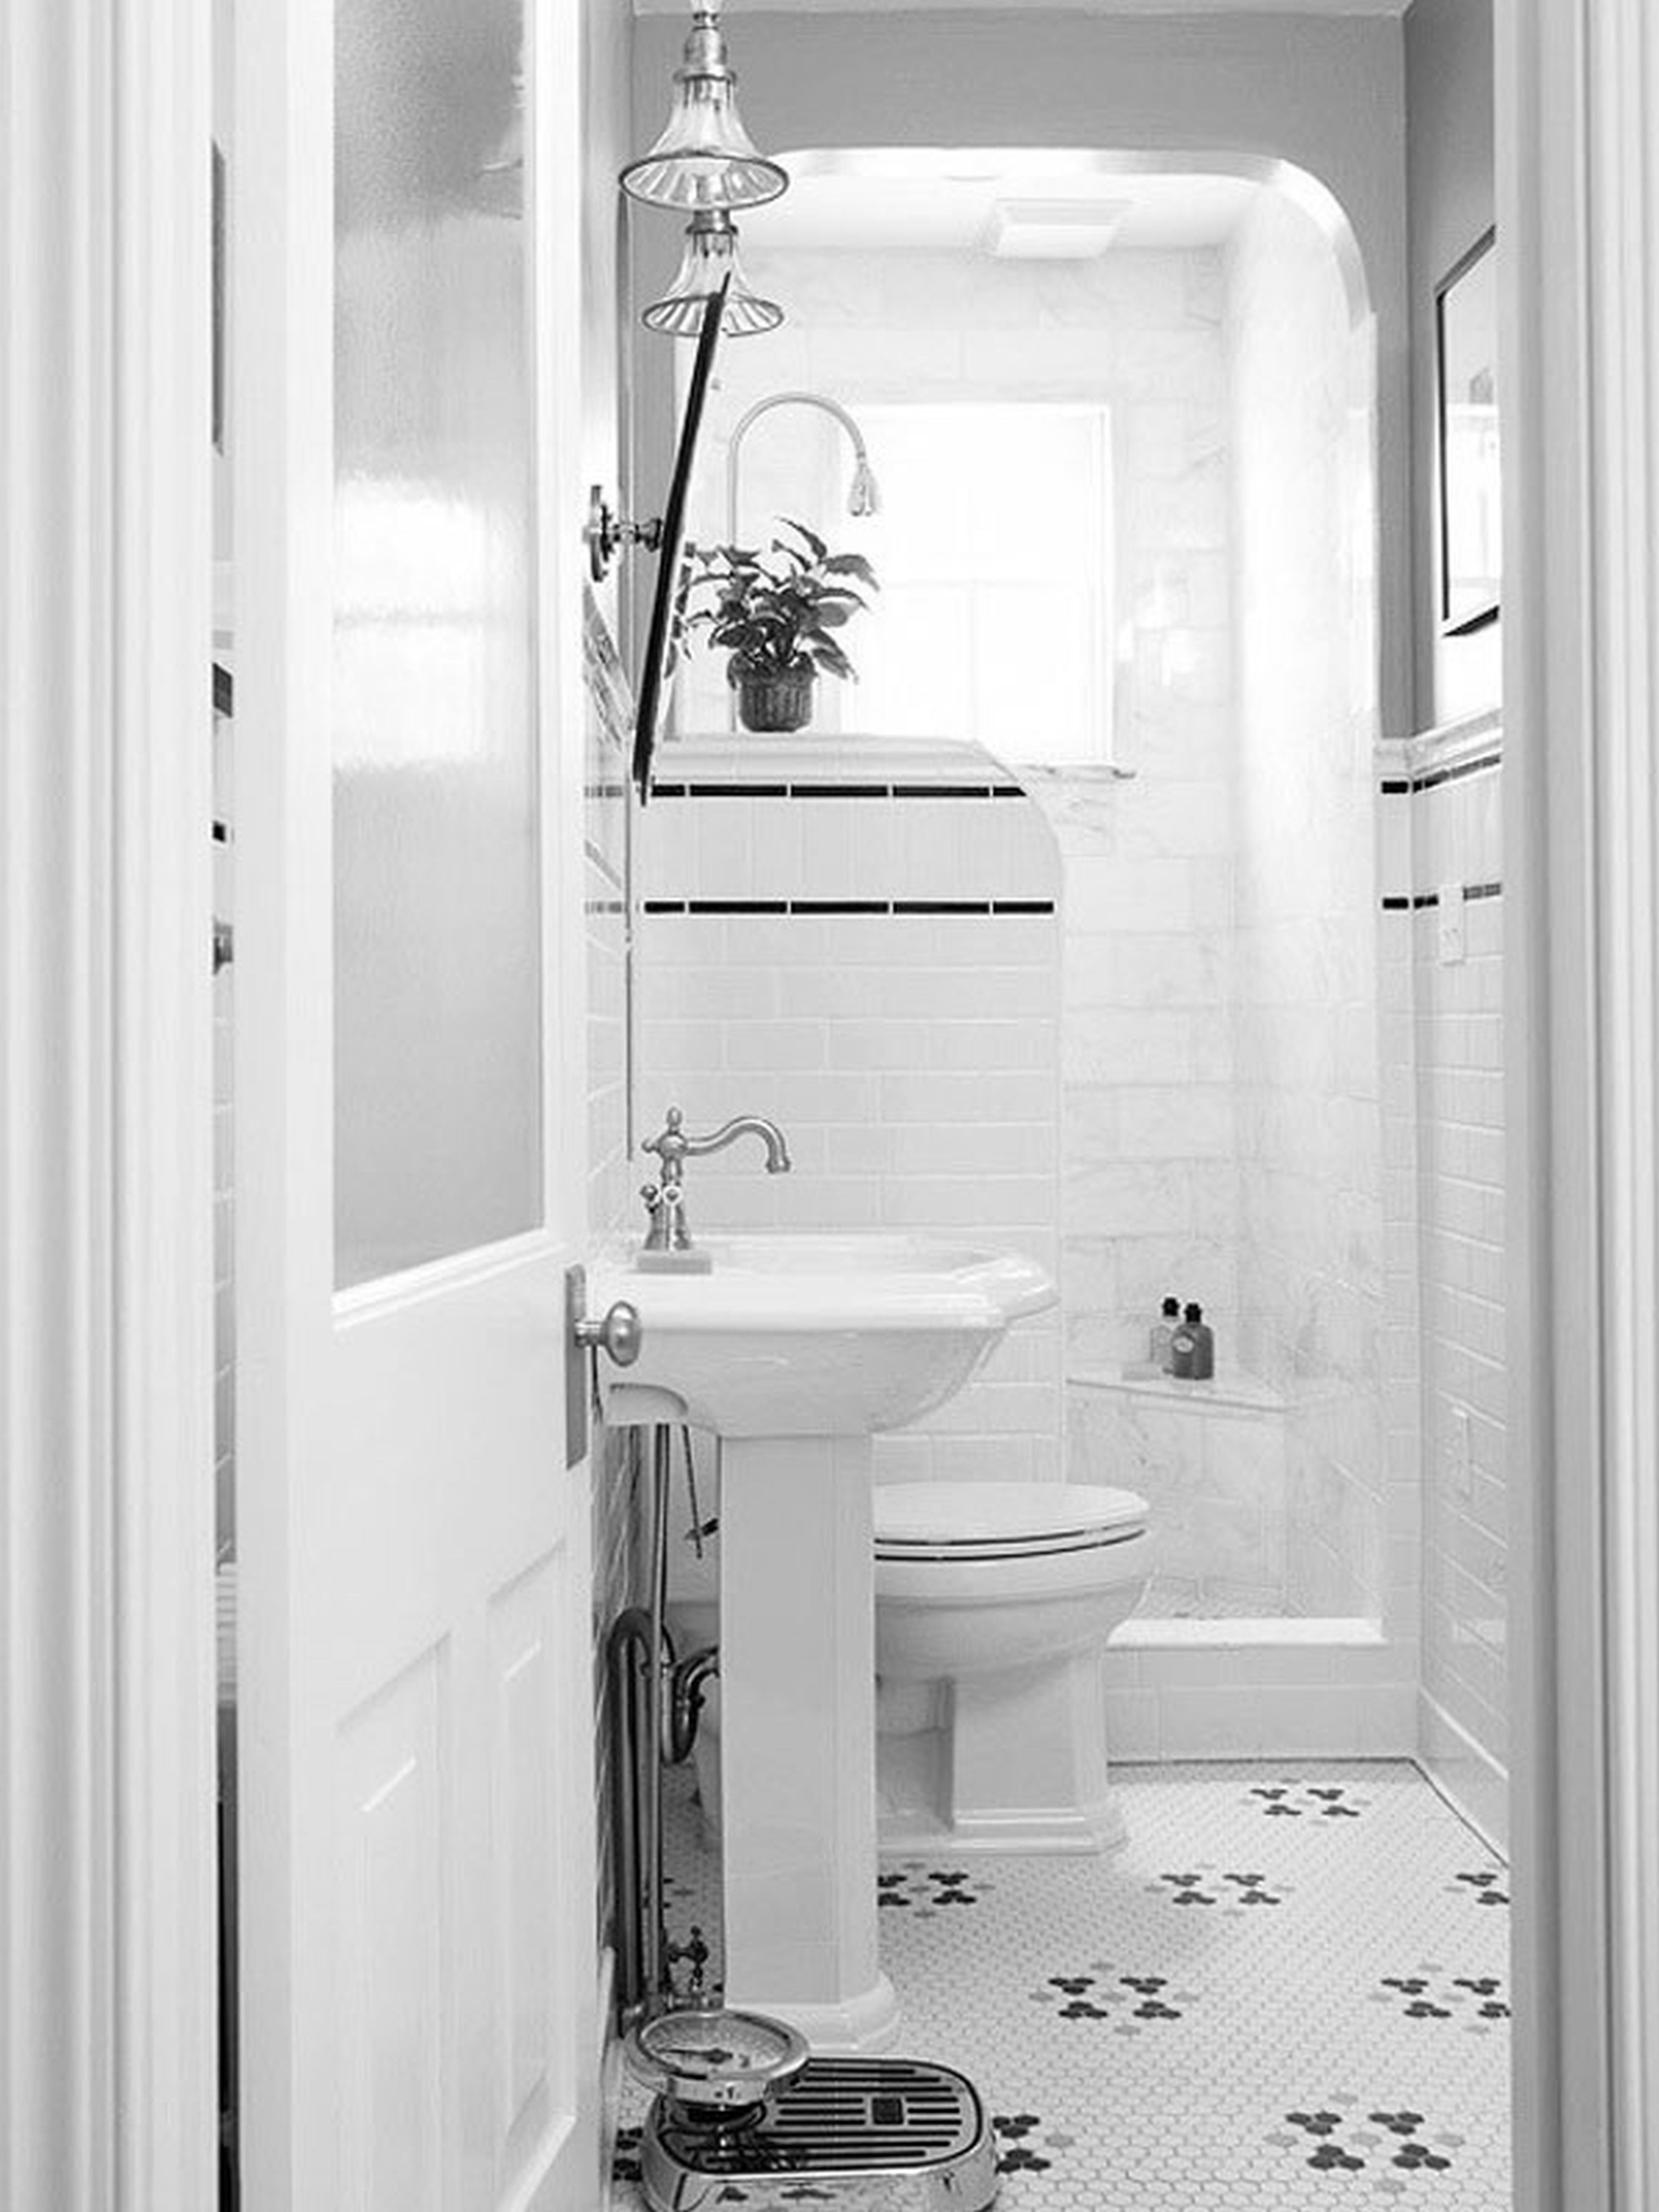 5 x 6 bathroom pictures - Google Search | Ideas for the House ...